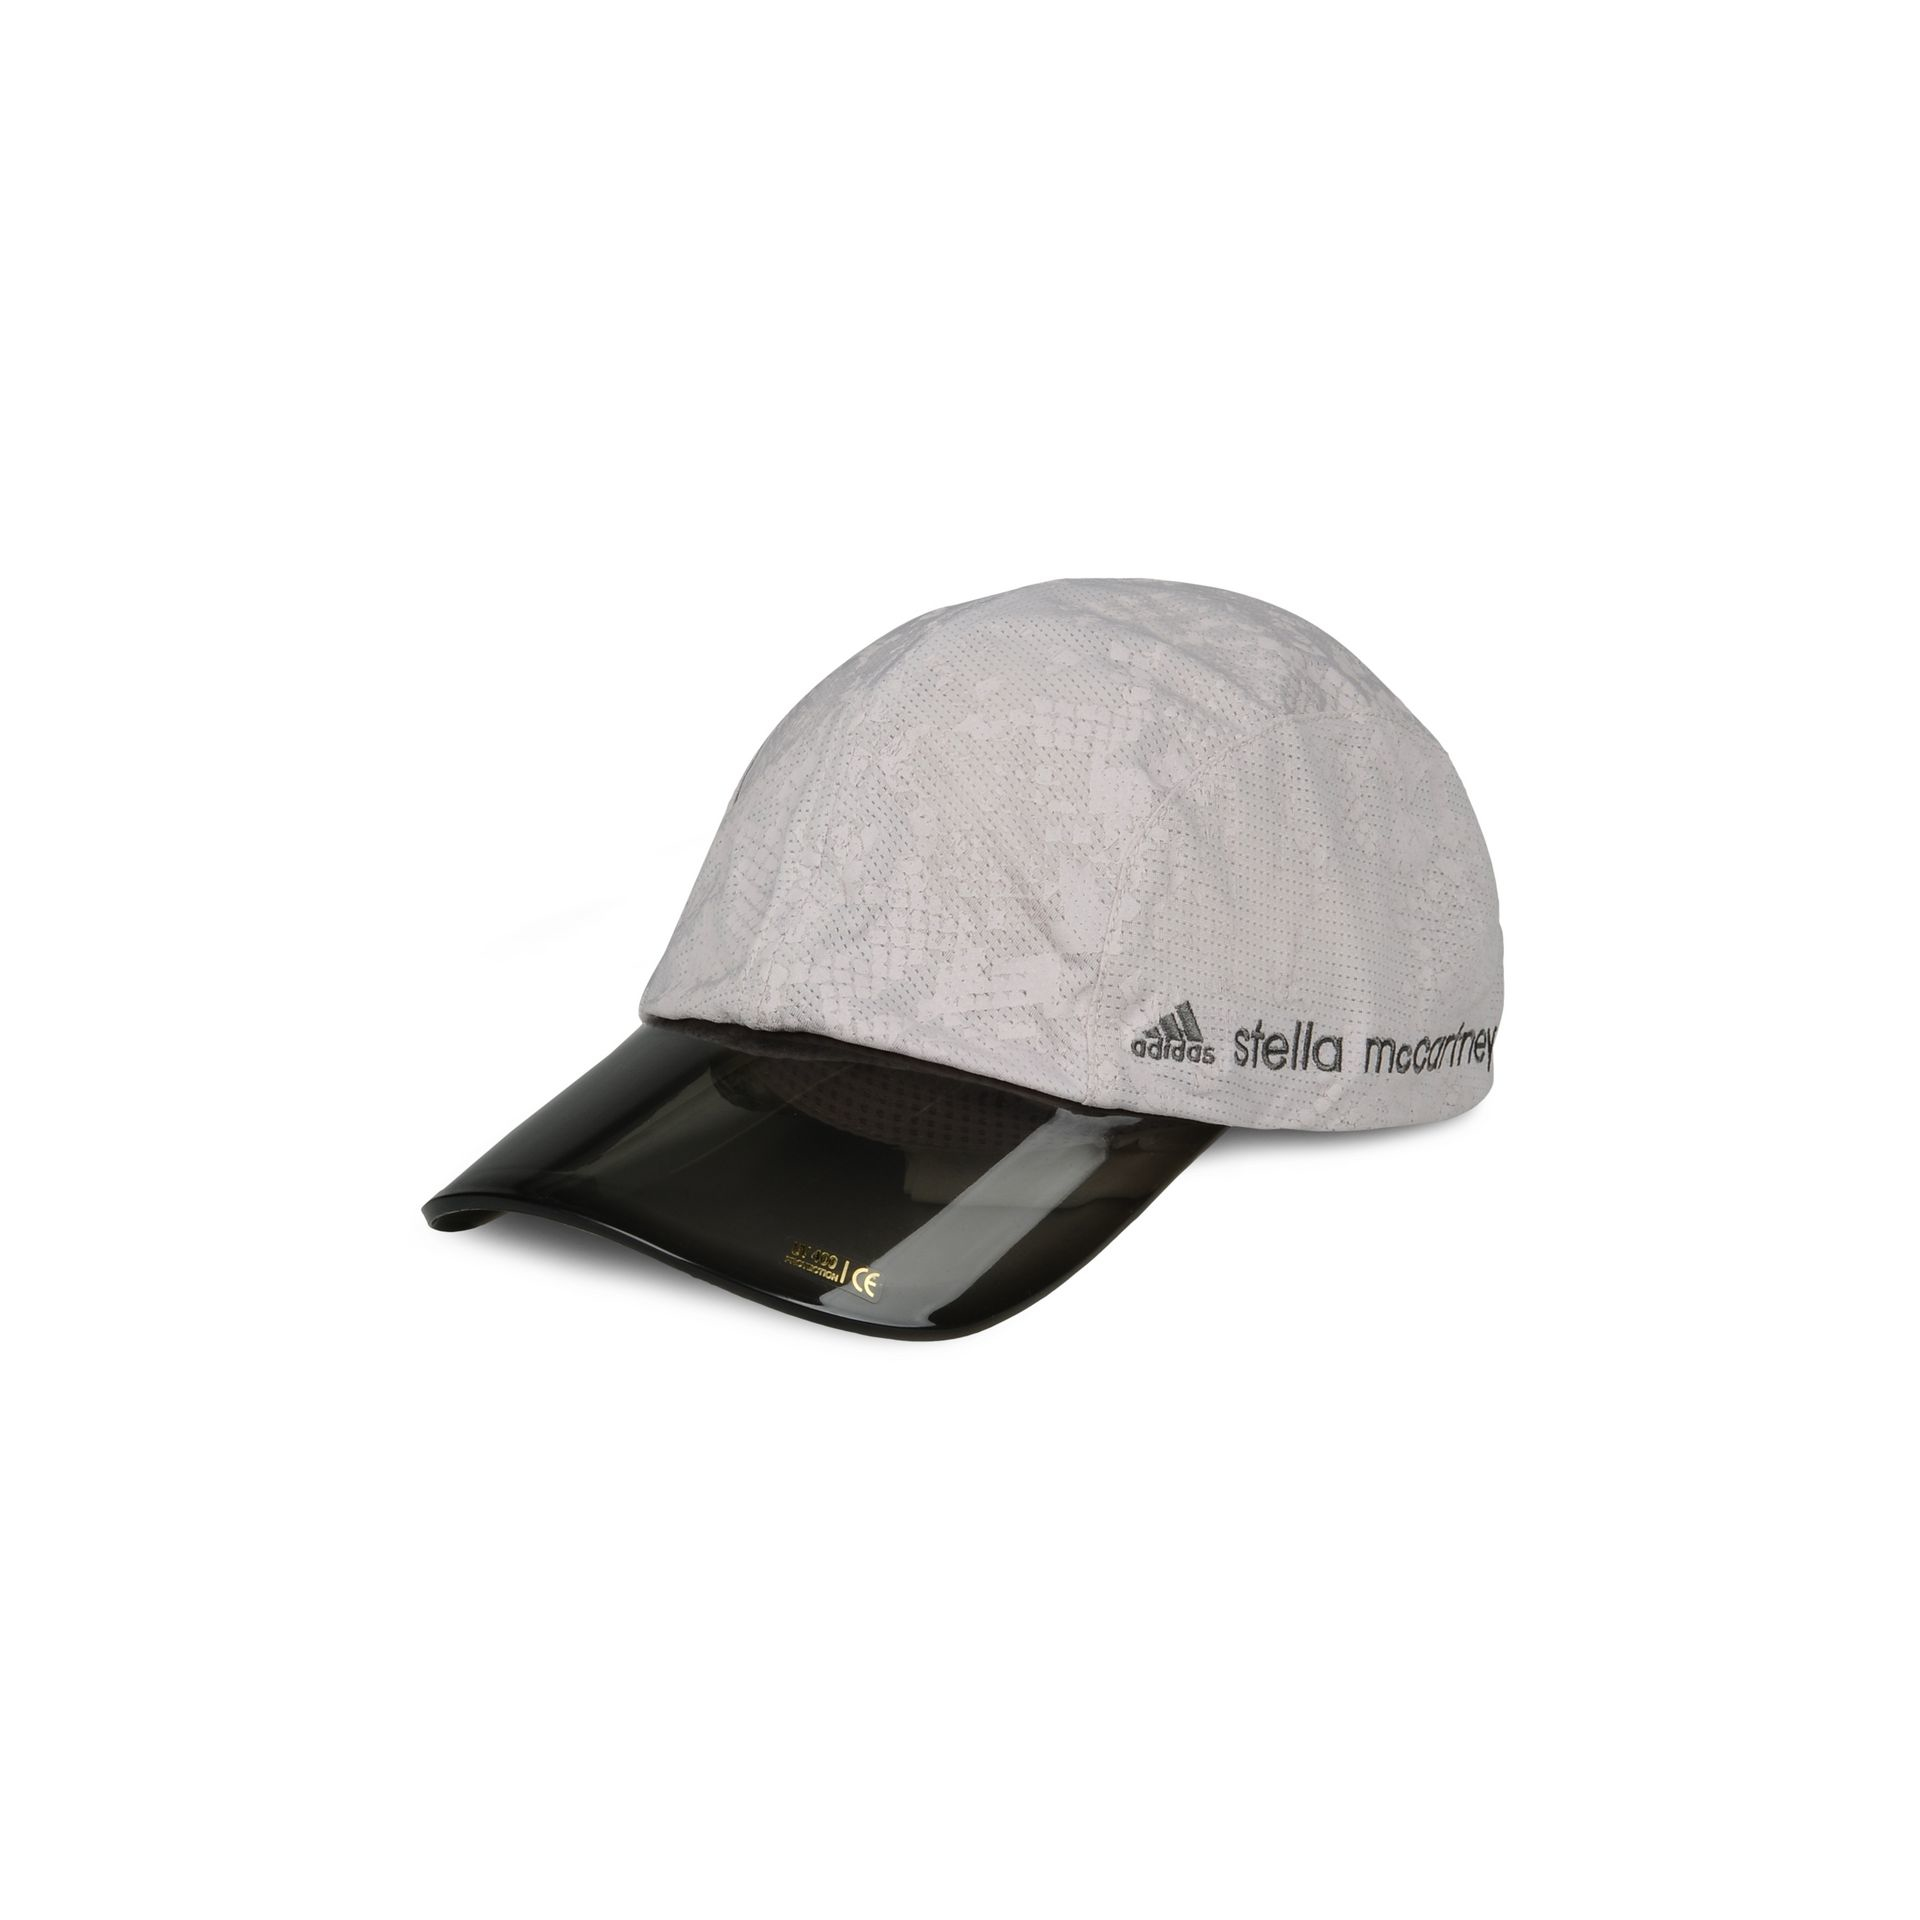 4c57ef577b8 Lyst - adidas By Stella McCartney Pink Run Cap in White